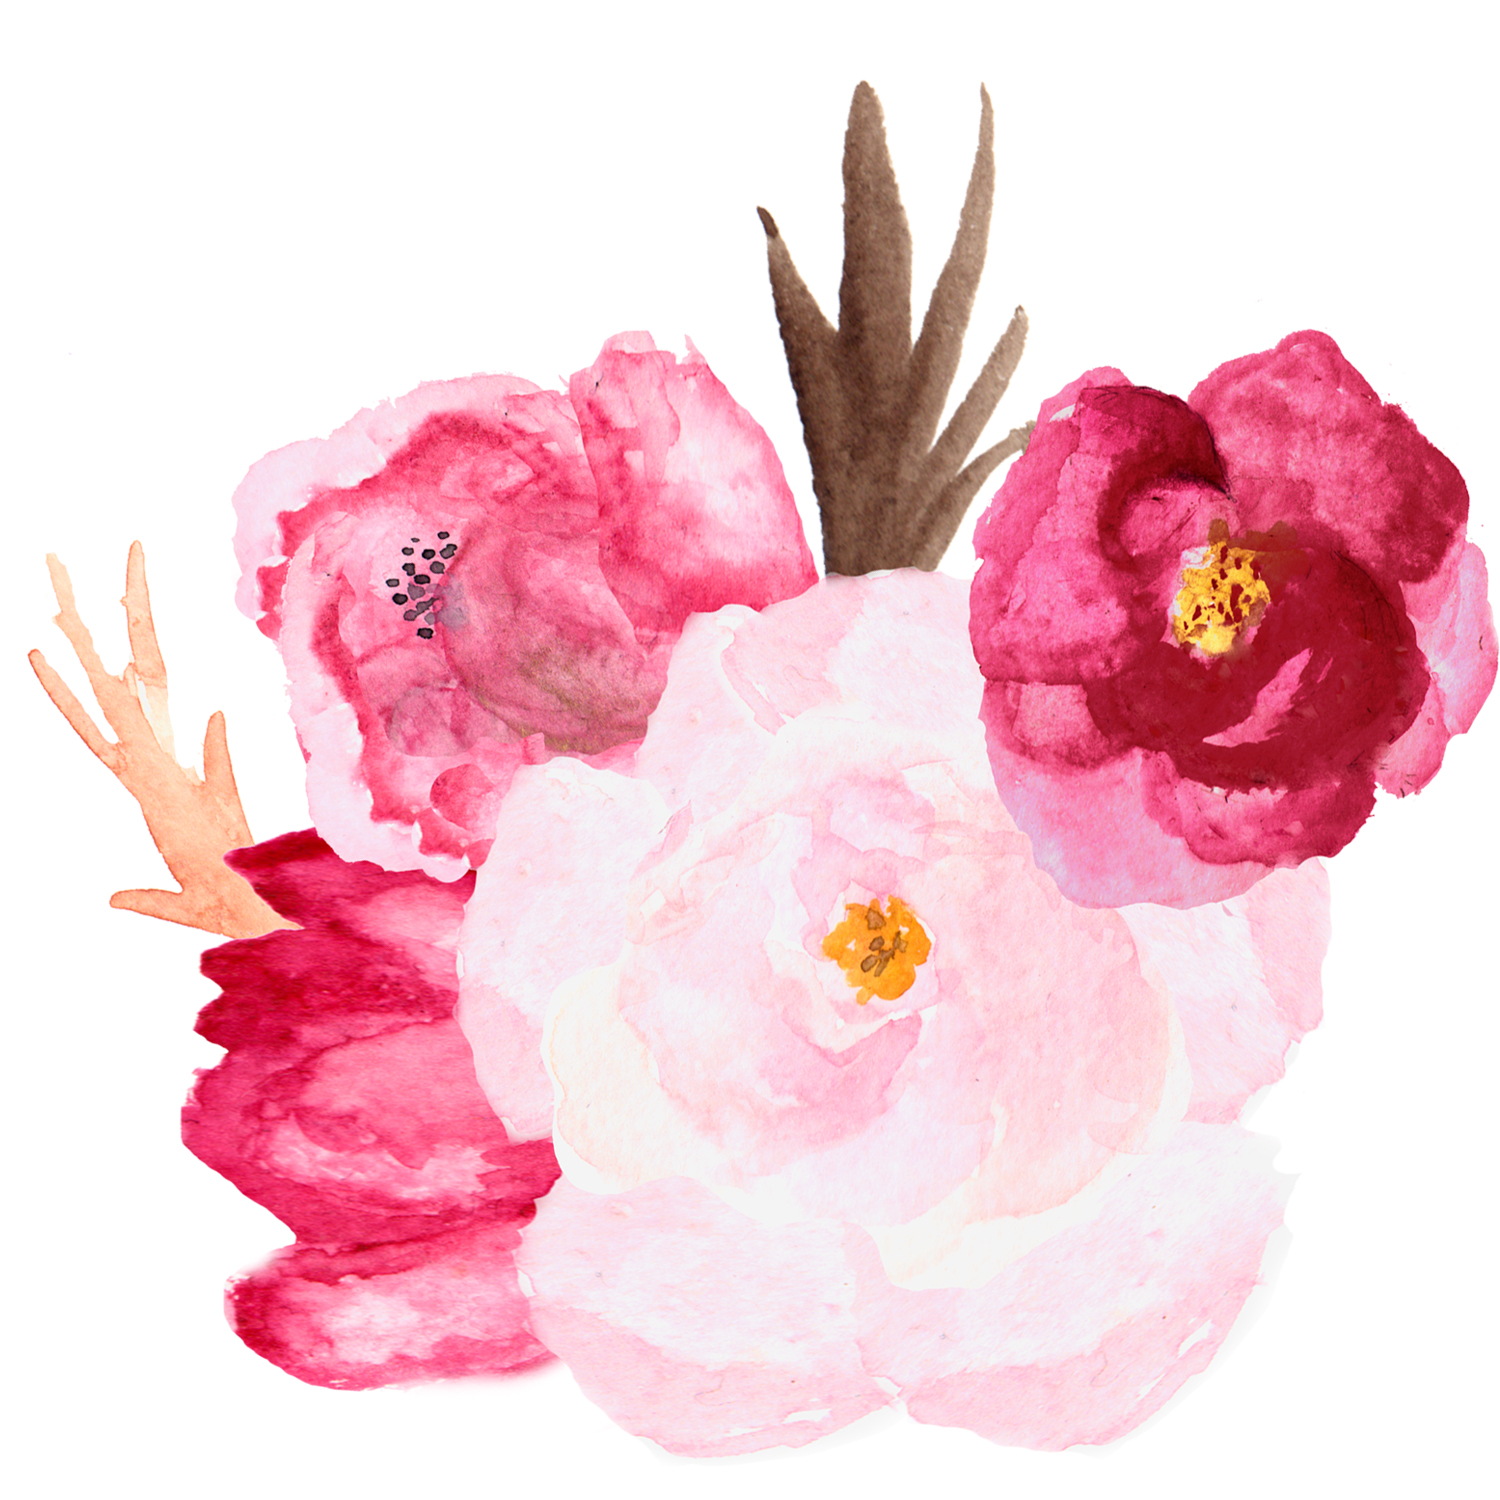 Watecolor Roses example image 2